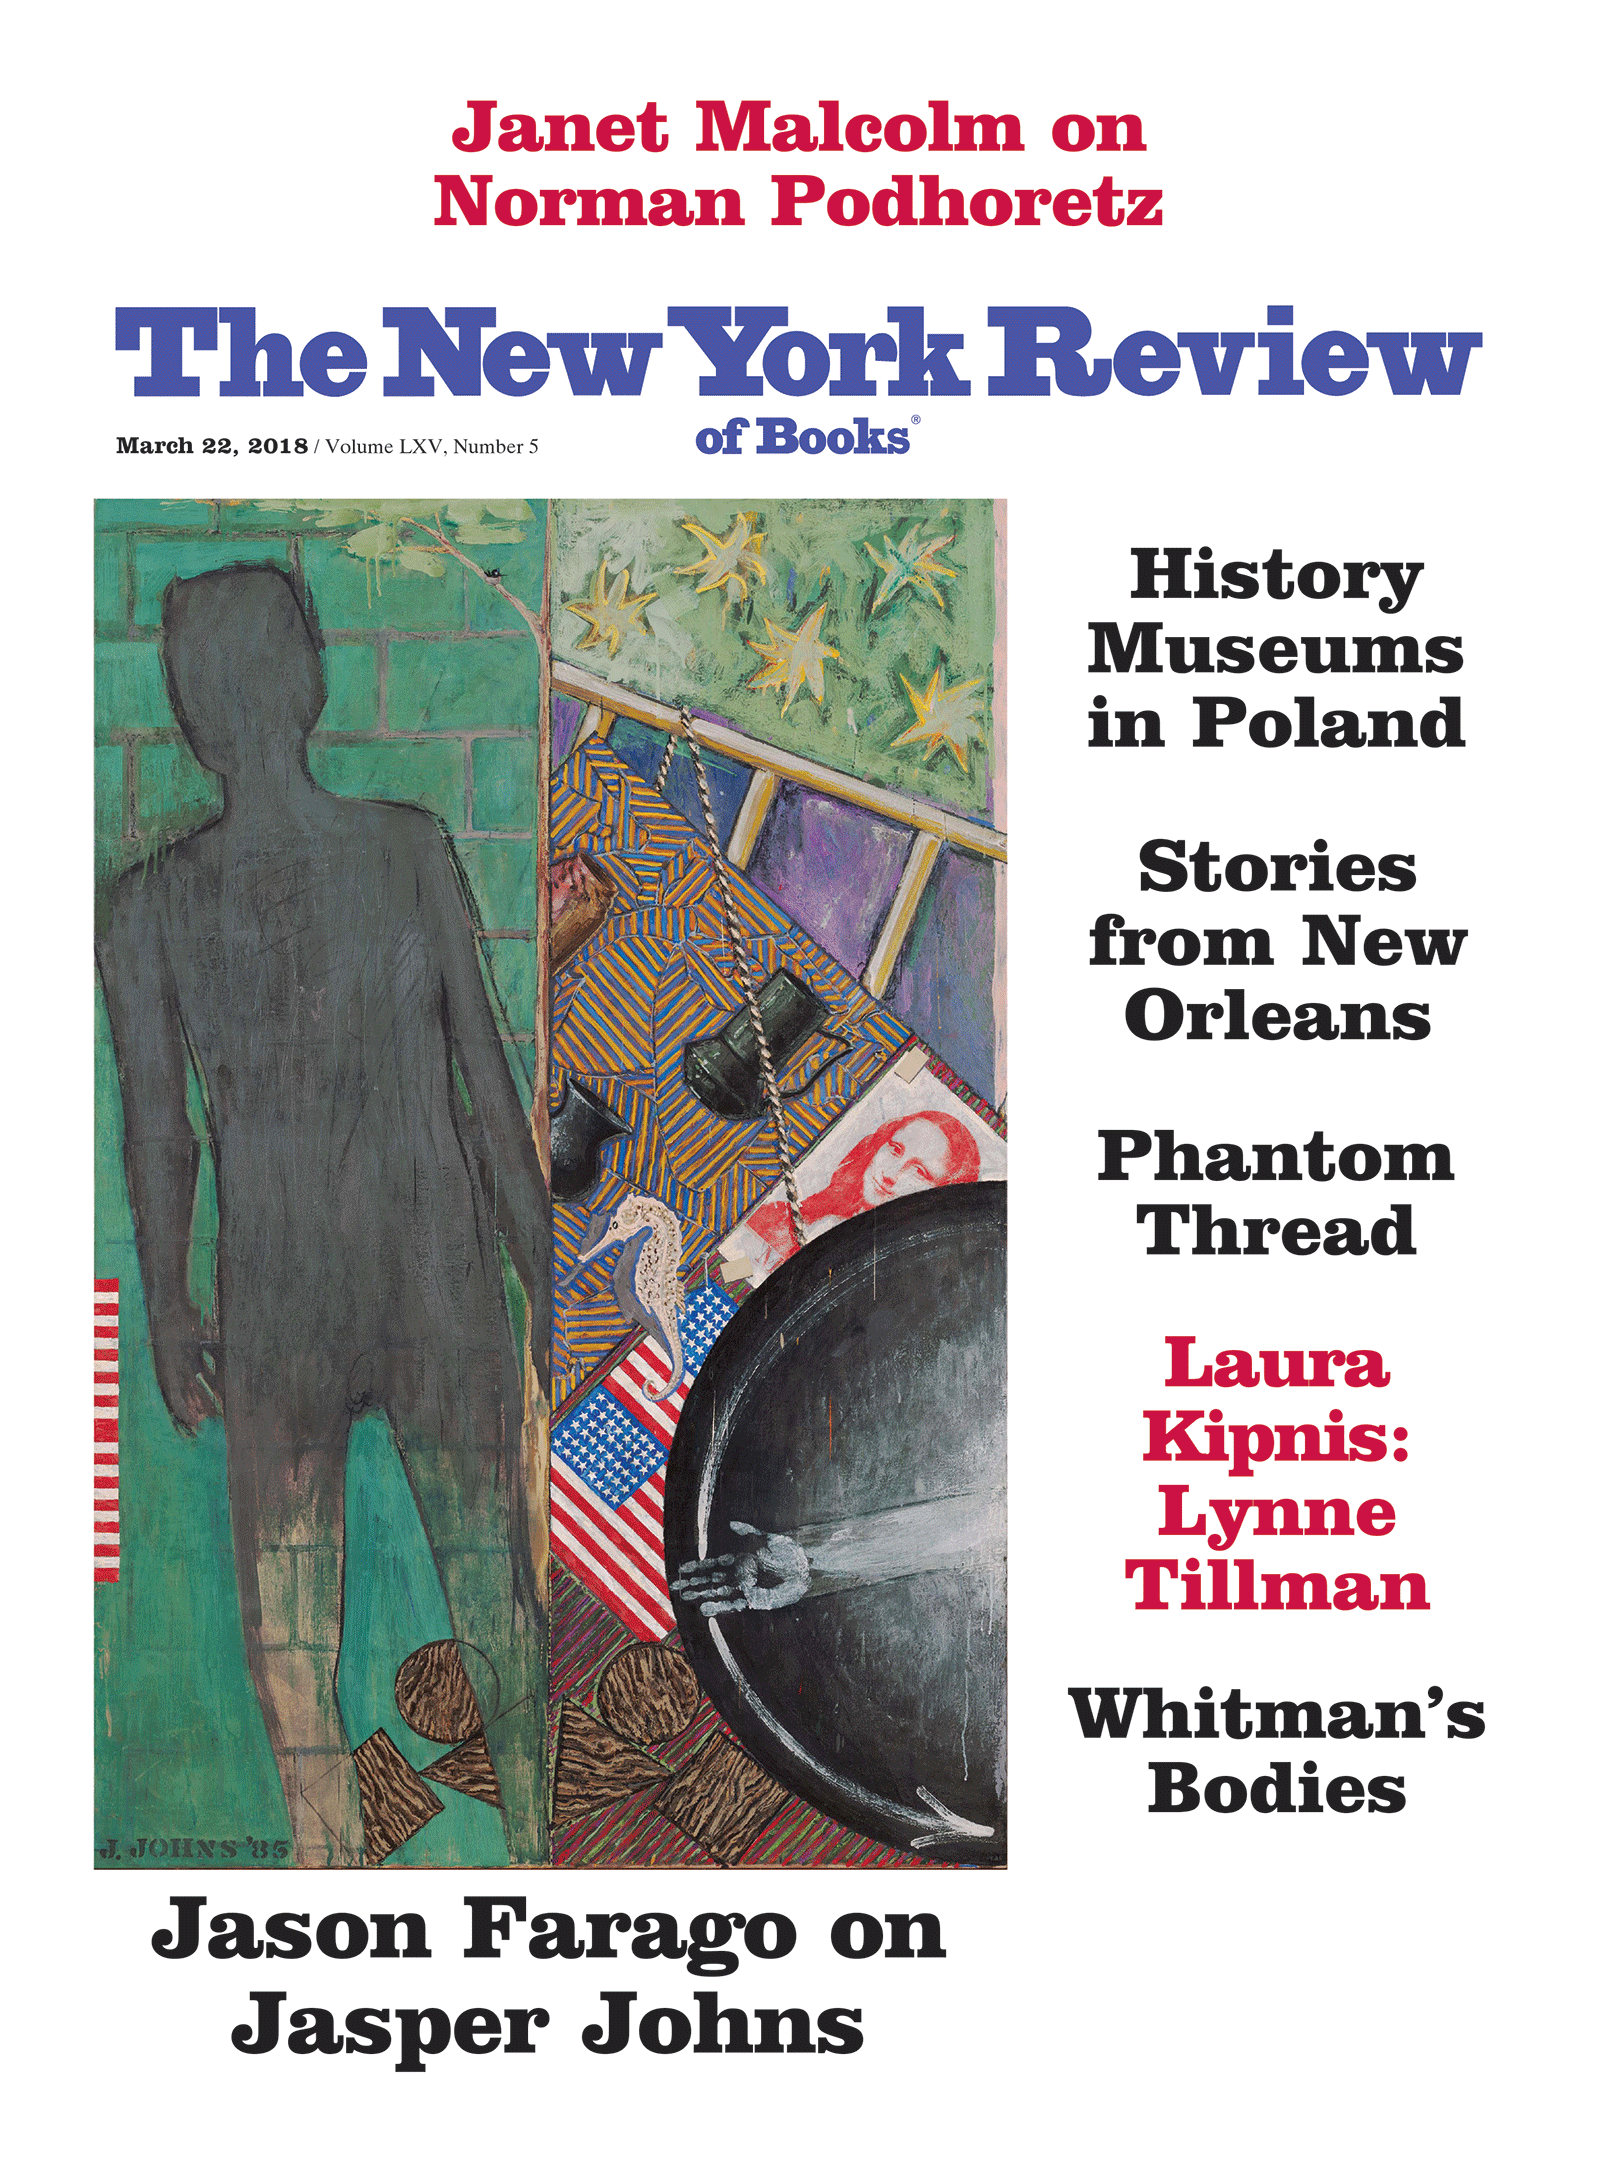 Image of the March 22, 2018 issue cover.